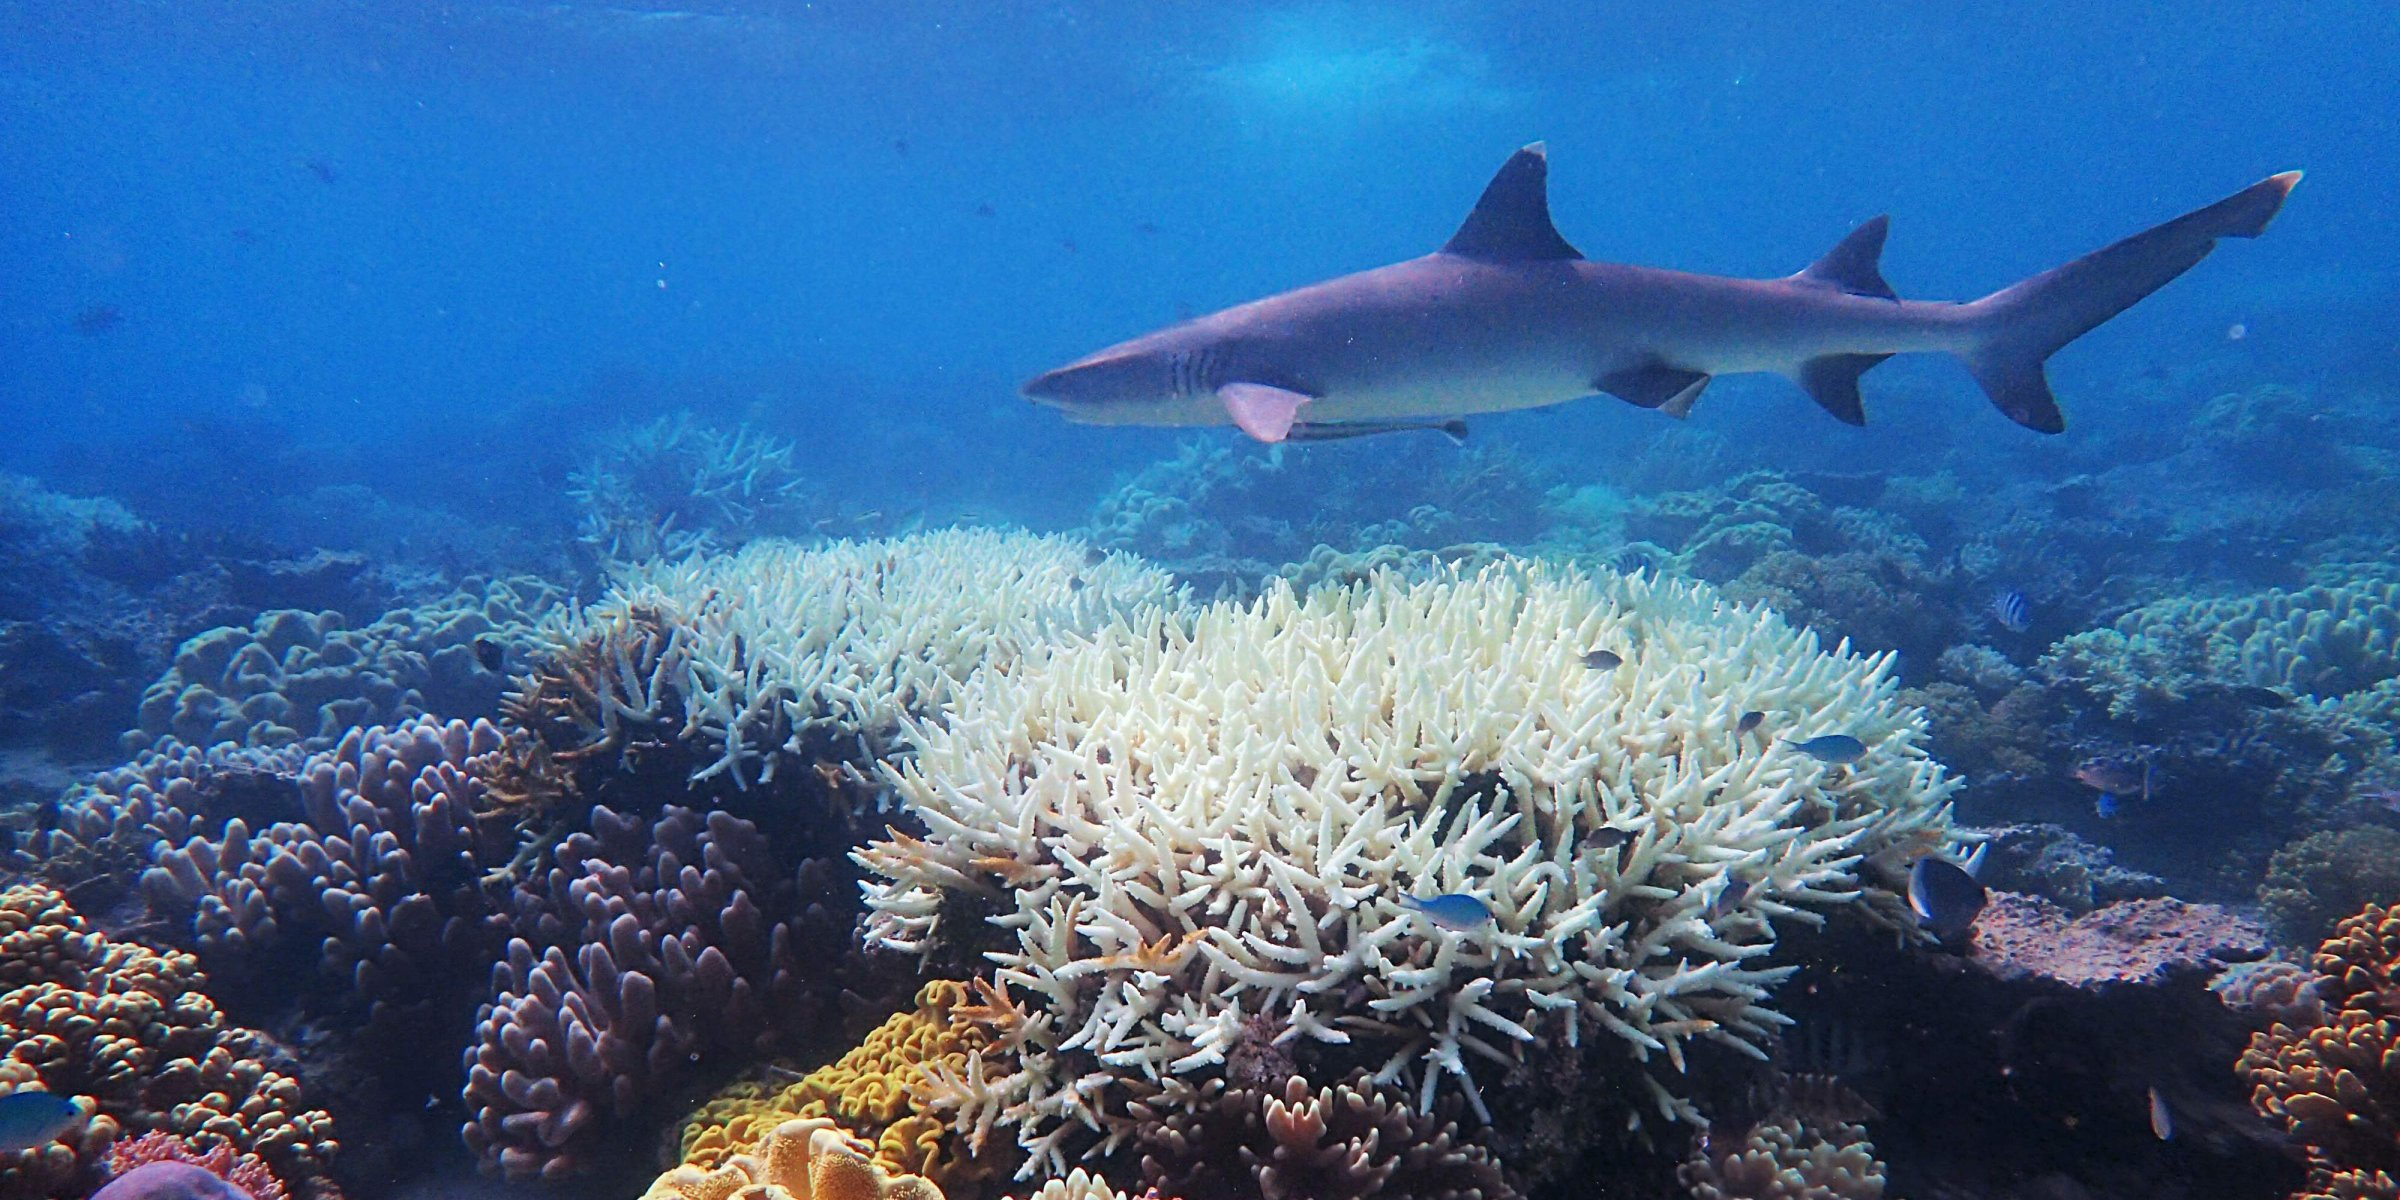 Global warming to cause 'catastrophic' species loss around world, study finds - Daily Sabah